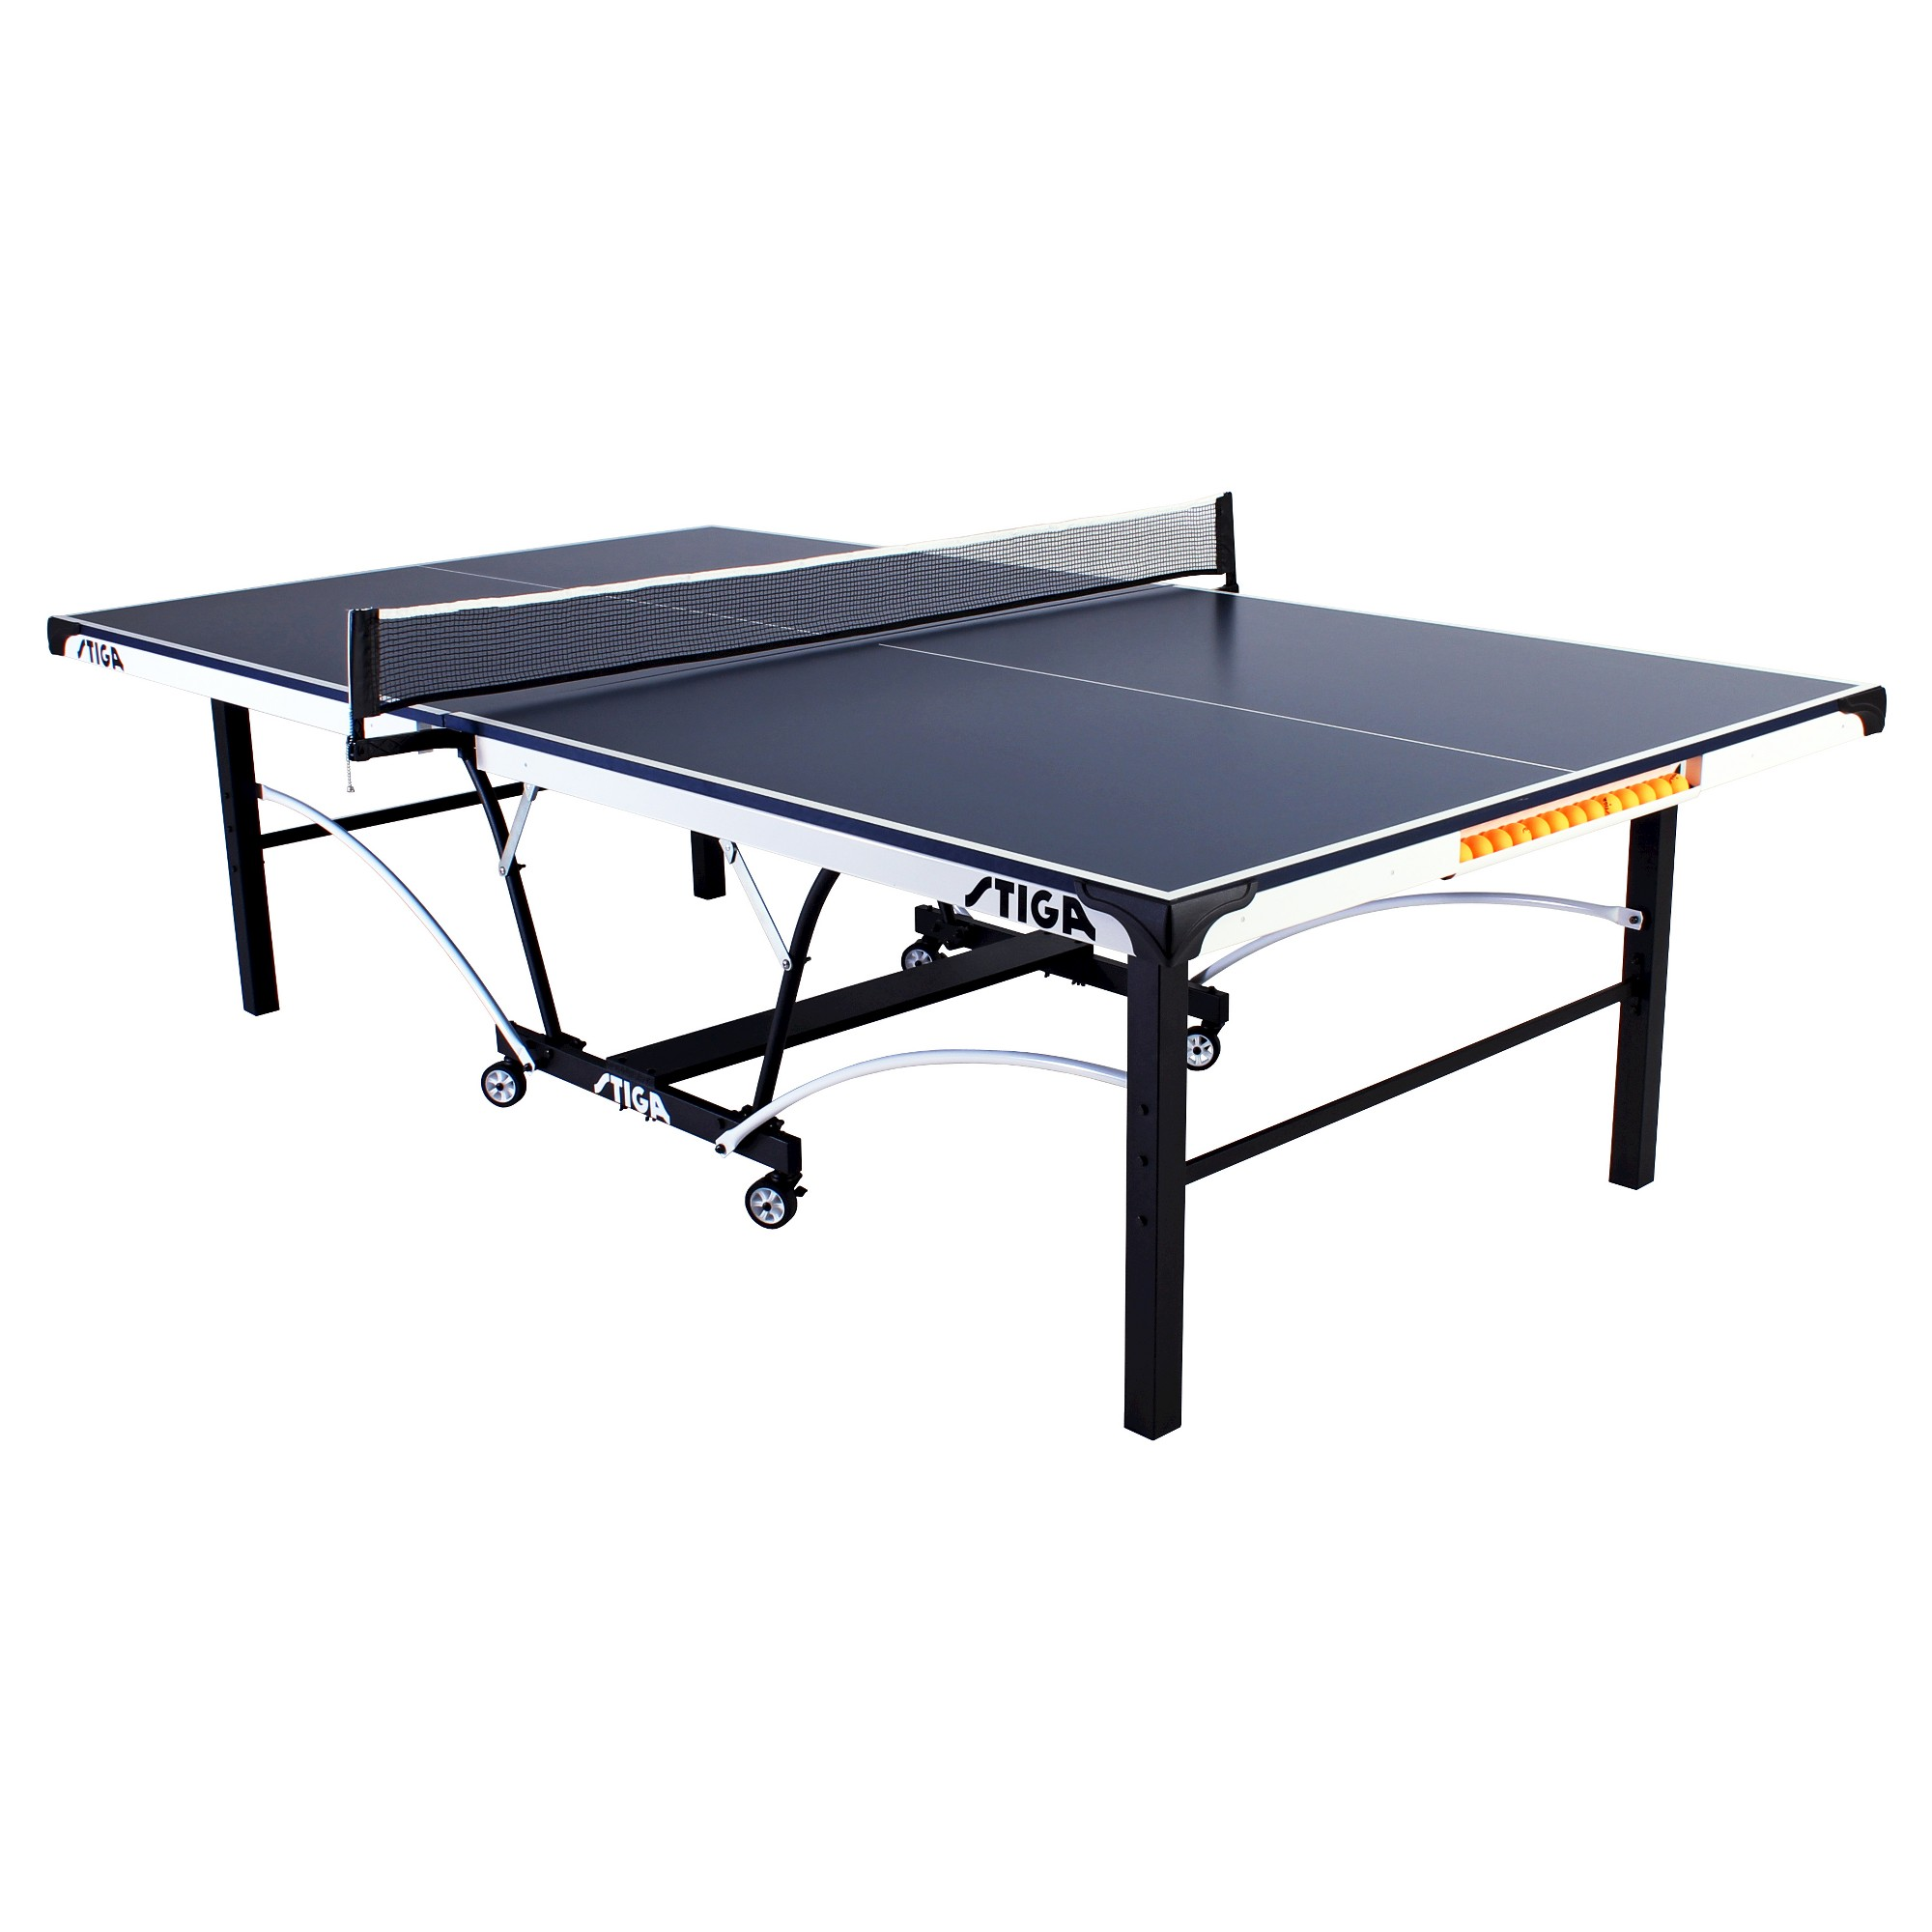 One of the best outdoor table tennis tables for home use - the ...